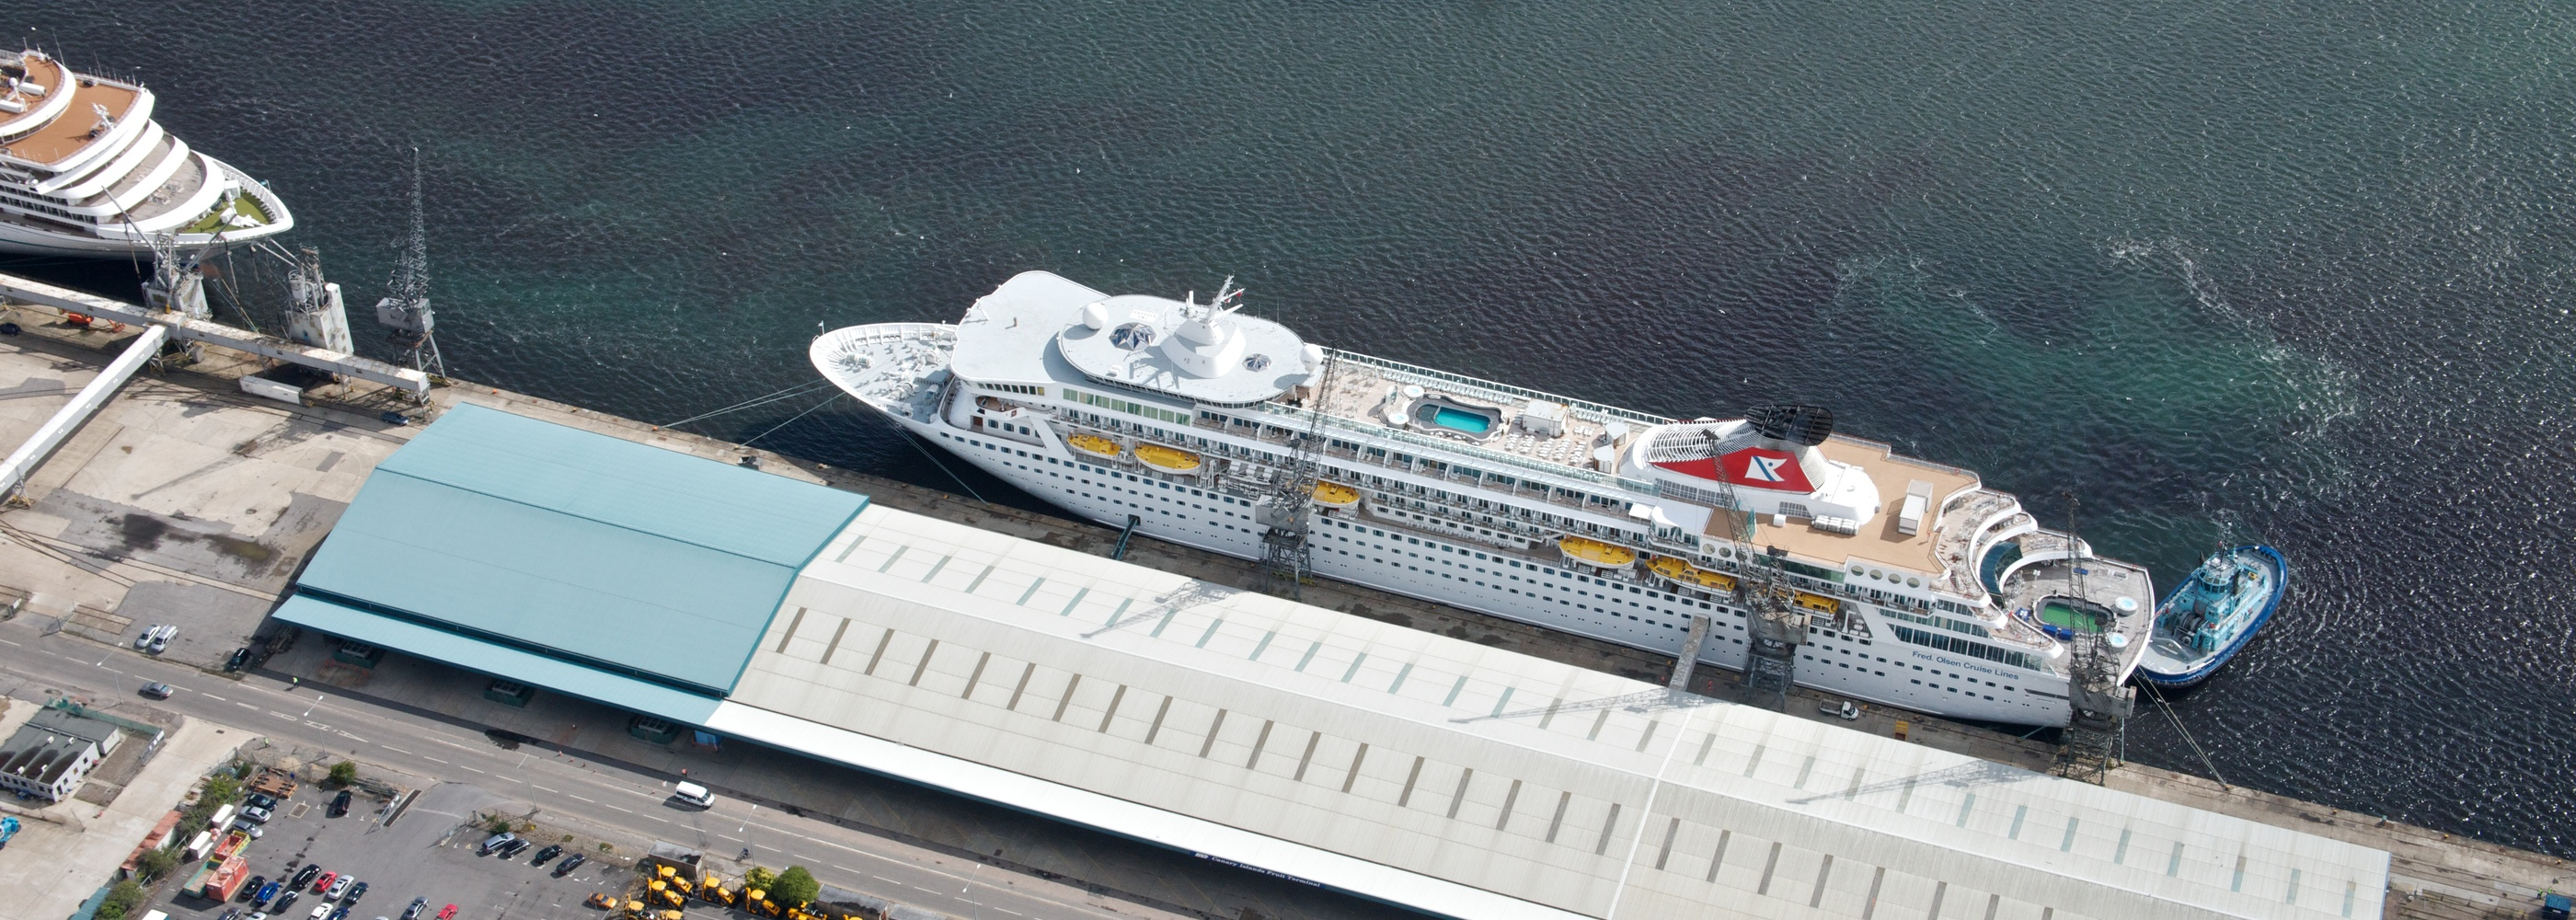 Cruise Ship Terminal Information - Arrival & Departure Lounges